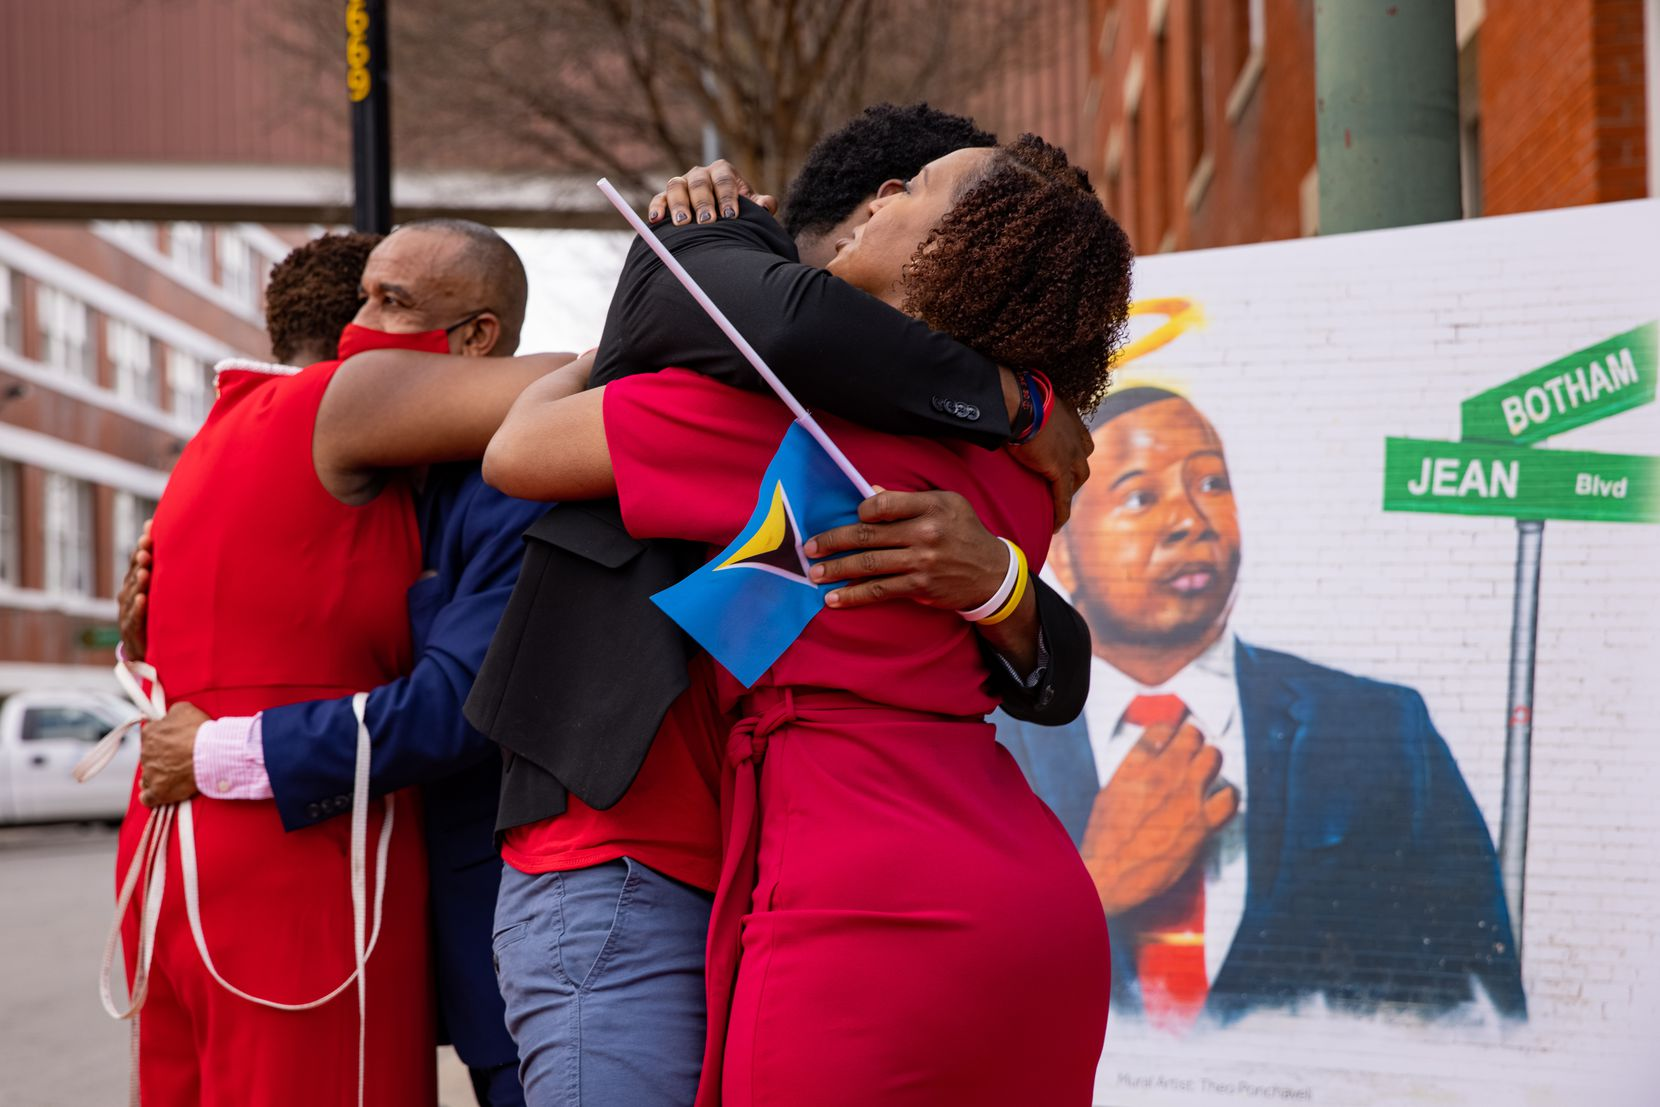 Botham Jean's family immediately embraced after the street sign bearing his name was unveiled, to cheers, on Saturday.